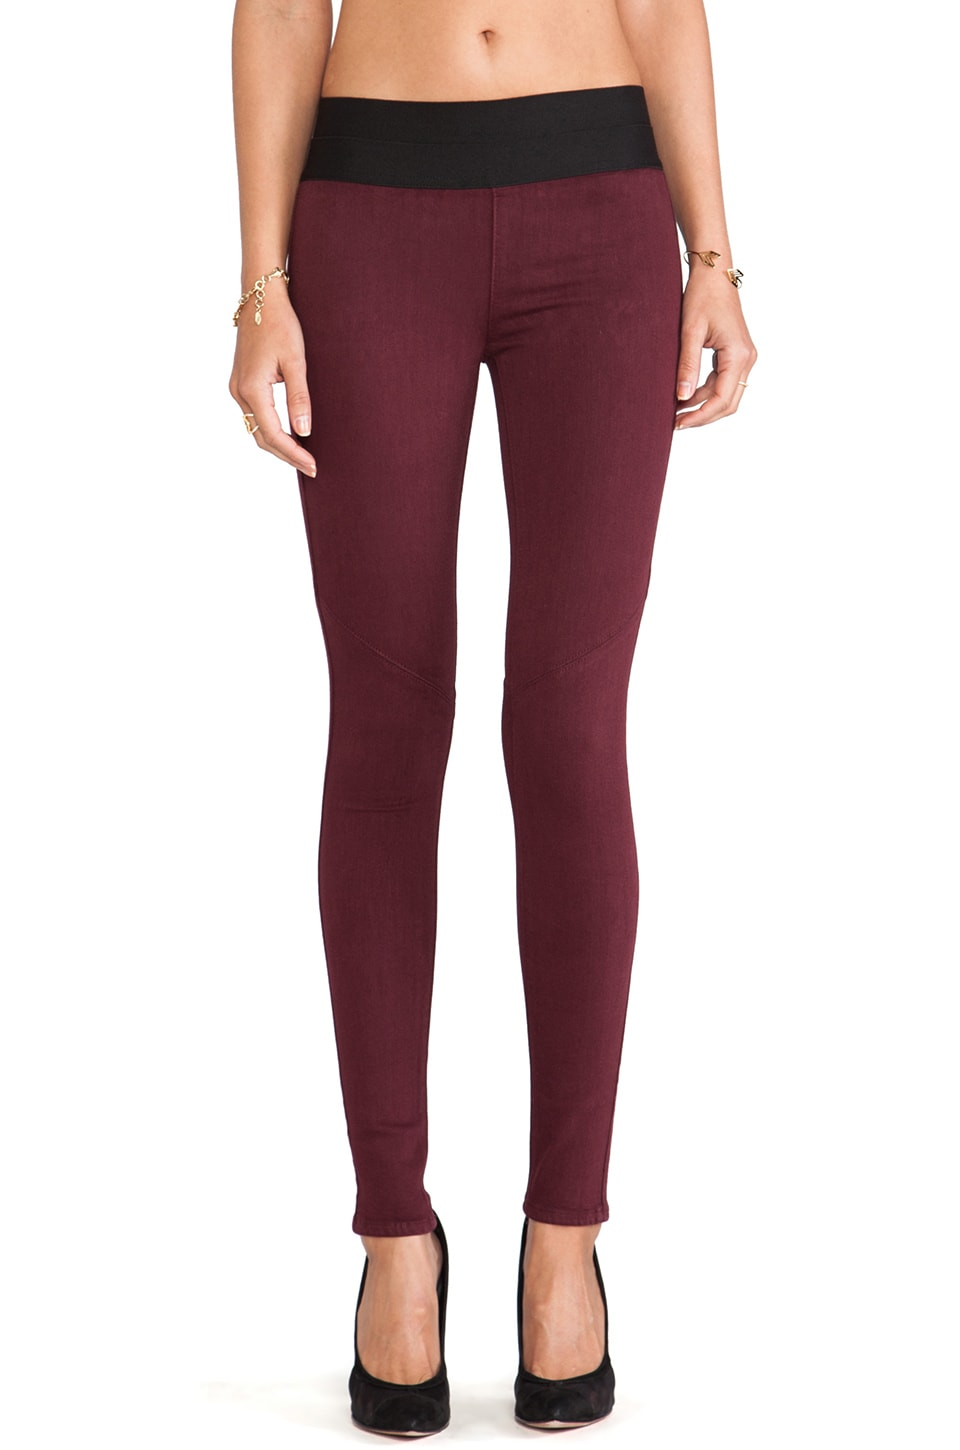 PAIGE Denim Glam Rock Legging in Lust